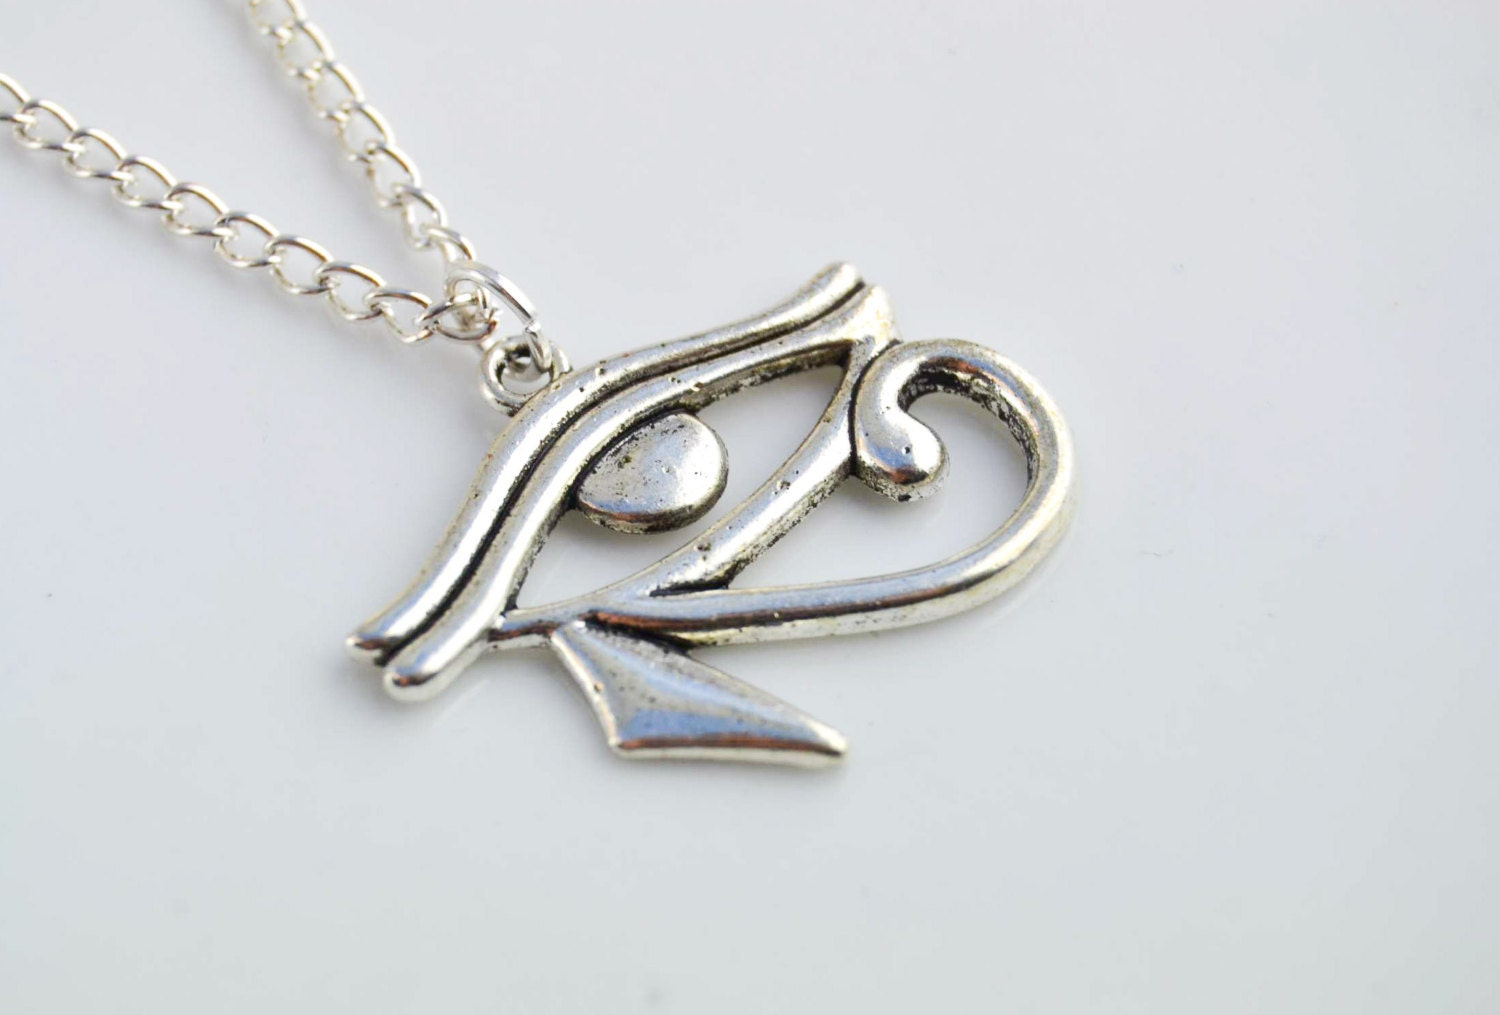 egyptian symbol necklace - photo #11